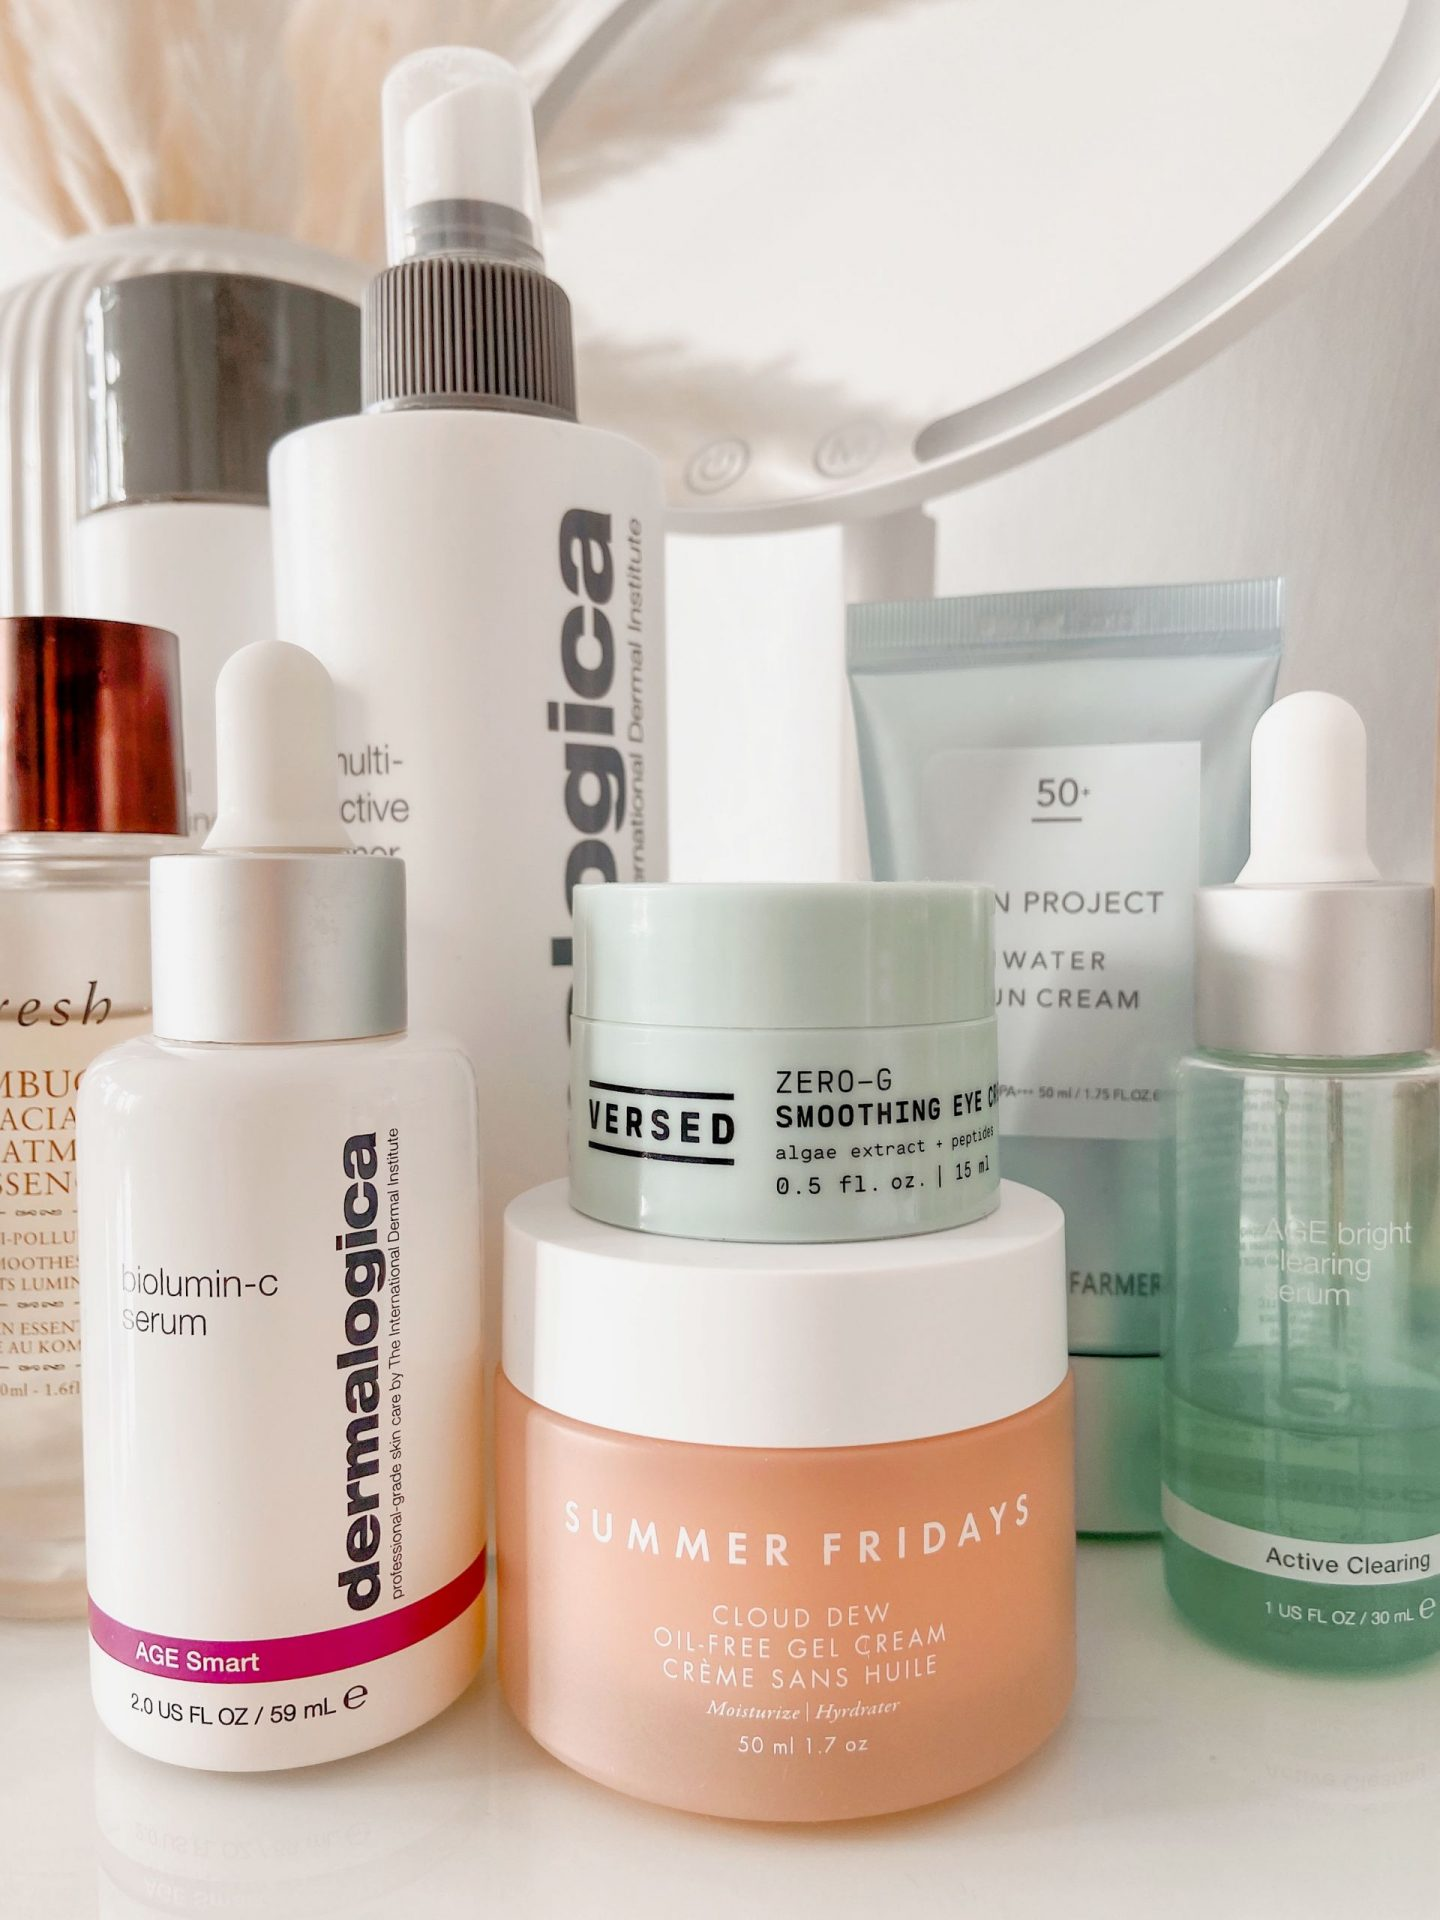 Skincare product recommendations for morning routine